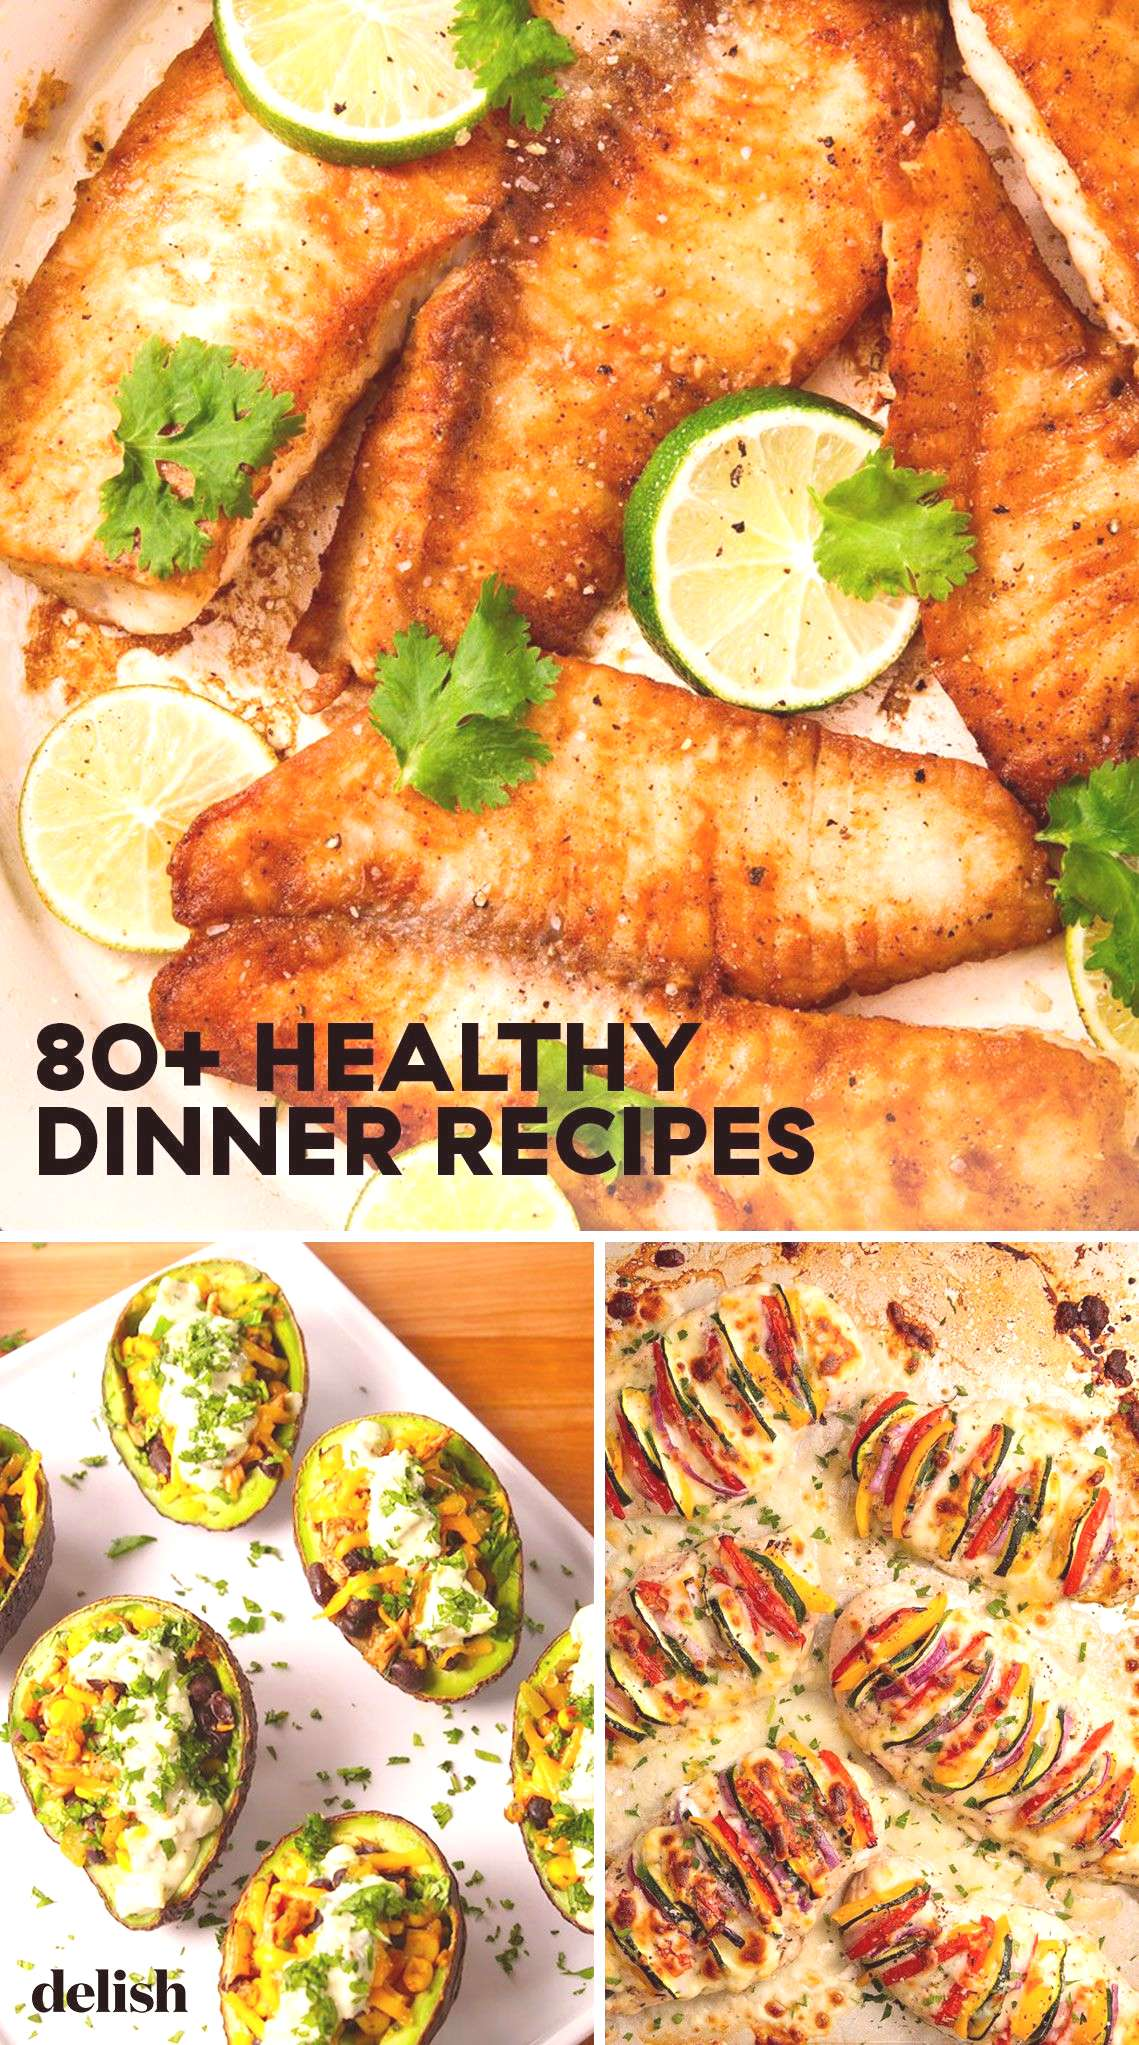 80+ Healthy Dinner Recipes Solid proof eating healthy doesn't have to be boring. Get the recipes at